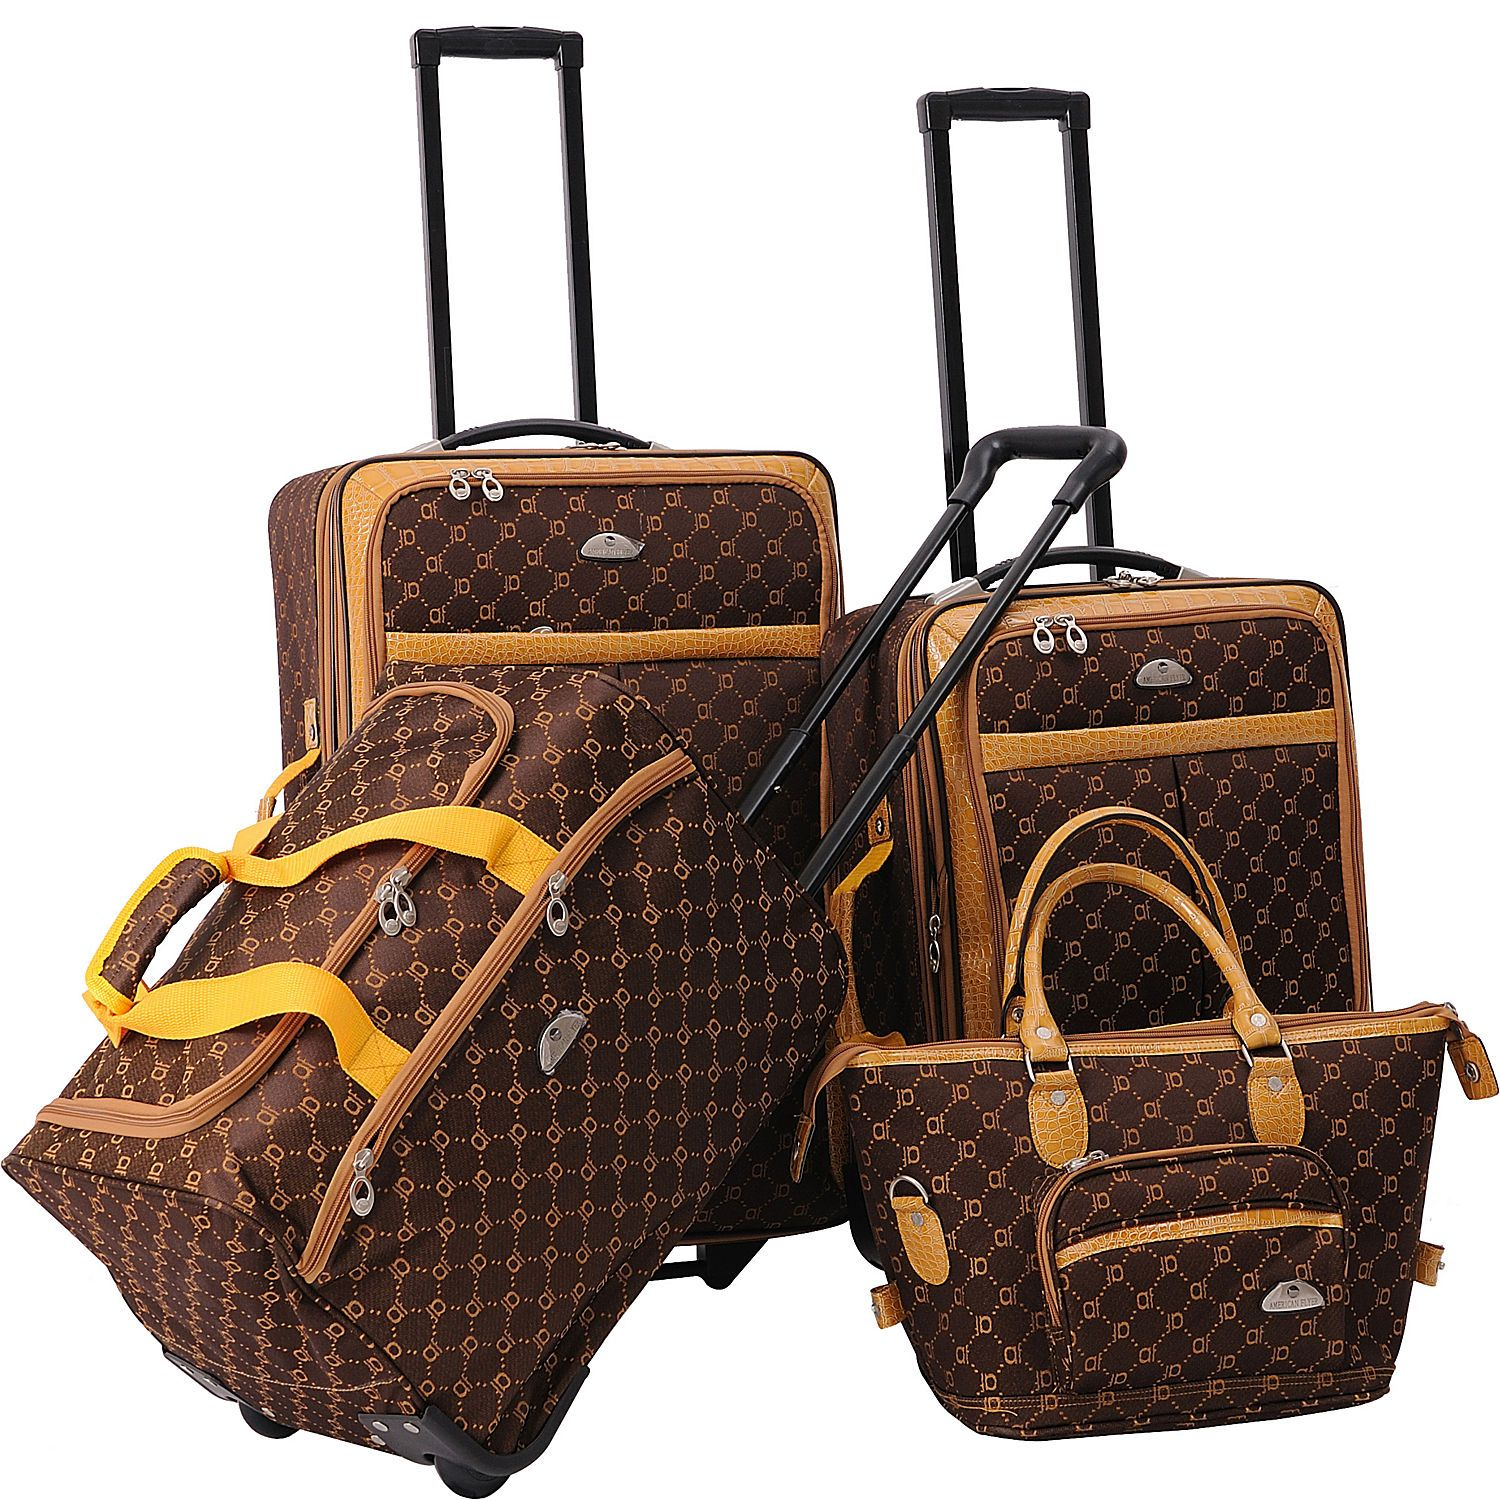 17 Best images about luggages on Pinterest | Bags, Olympia and ...